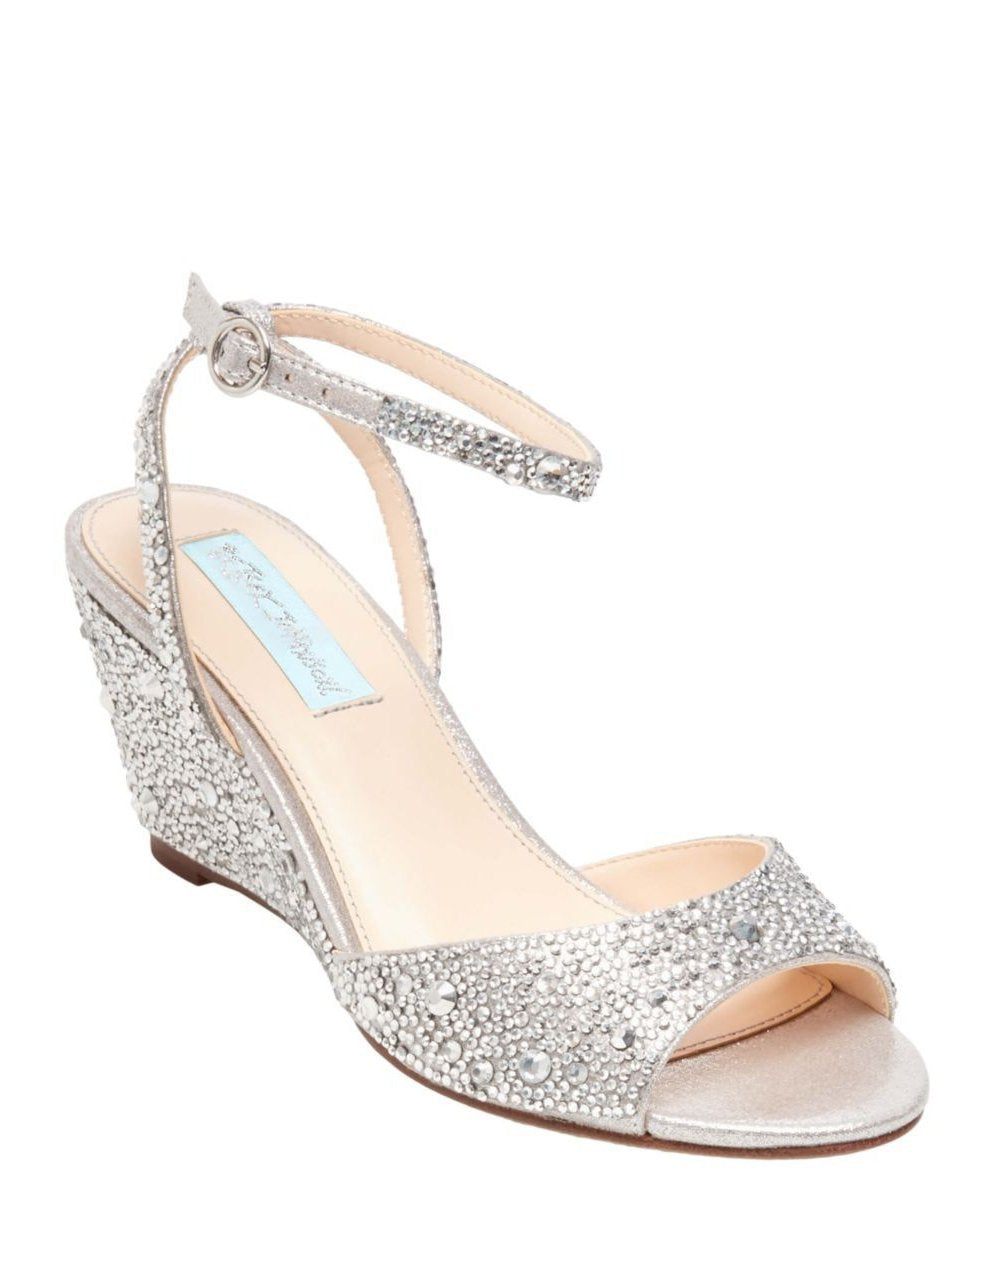 SB-ELORA SILVER - SHOES - Betsey Johnson